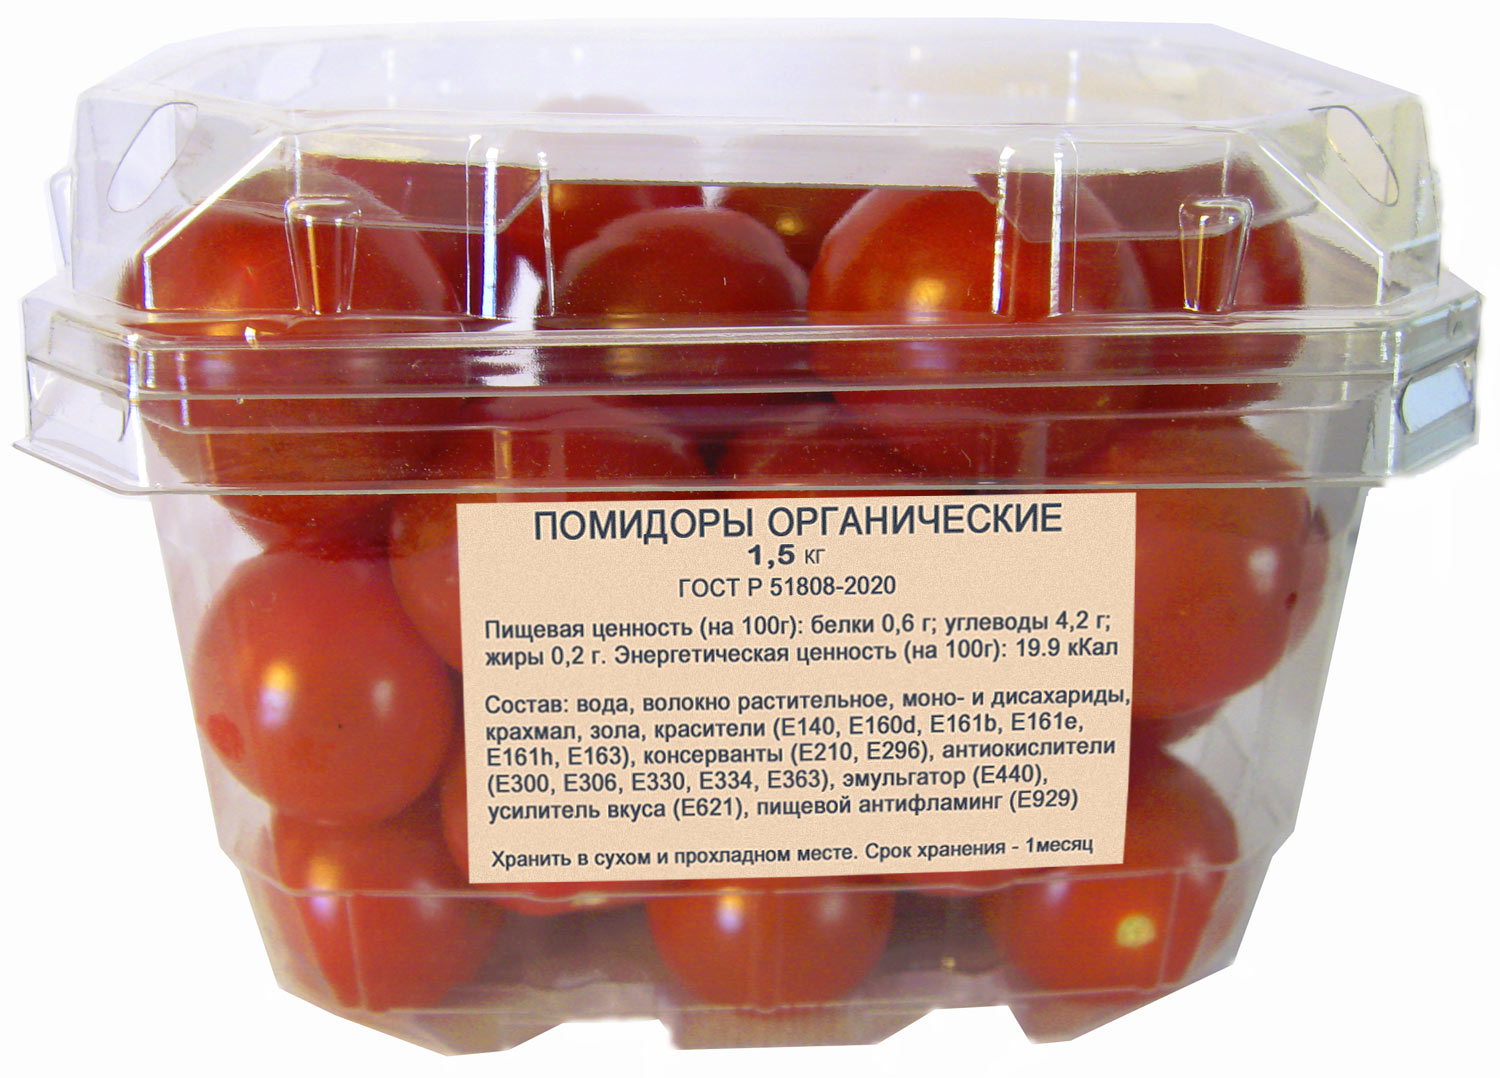 organoc tomatoes with food additives